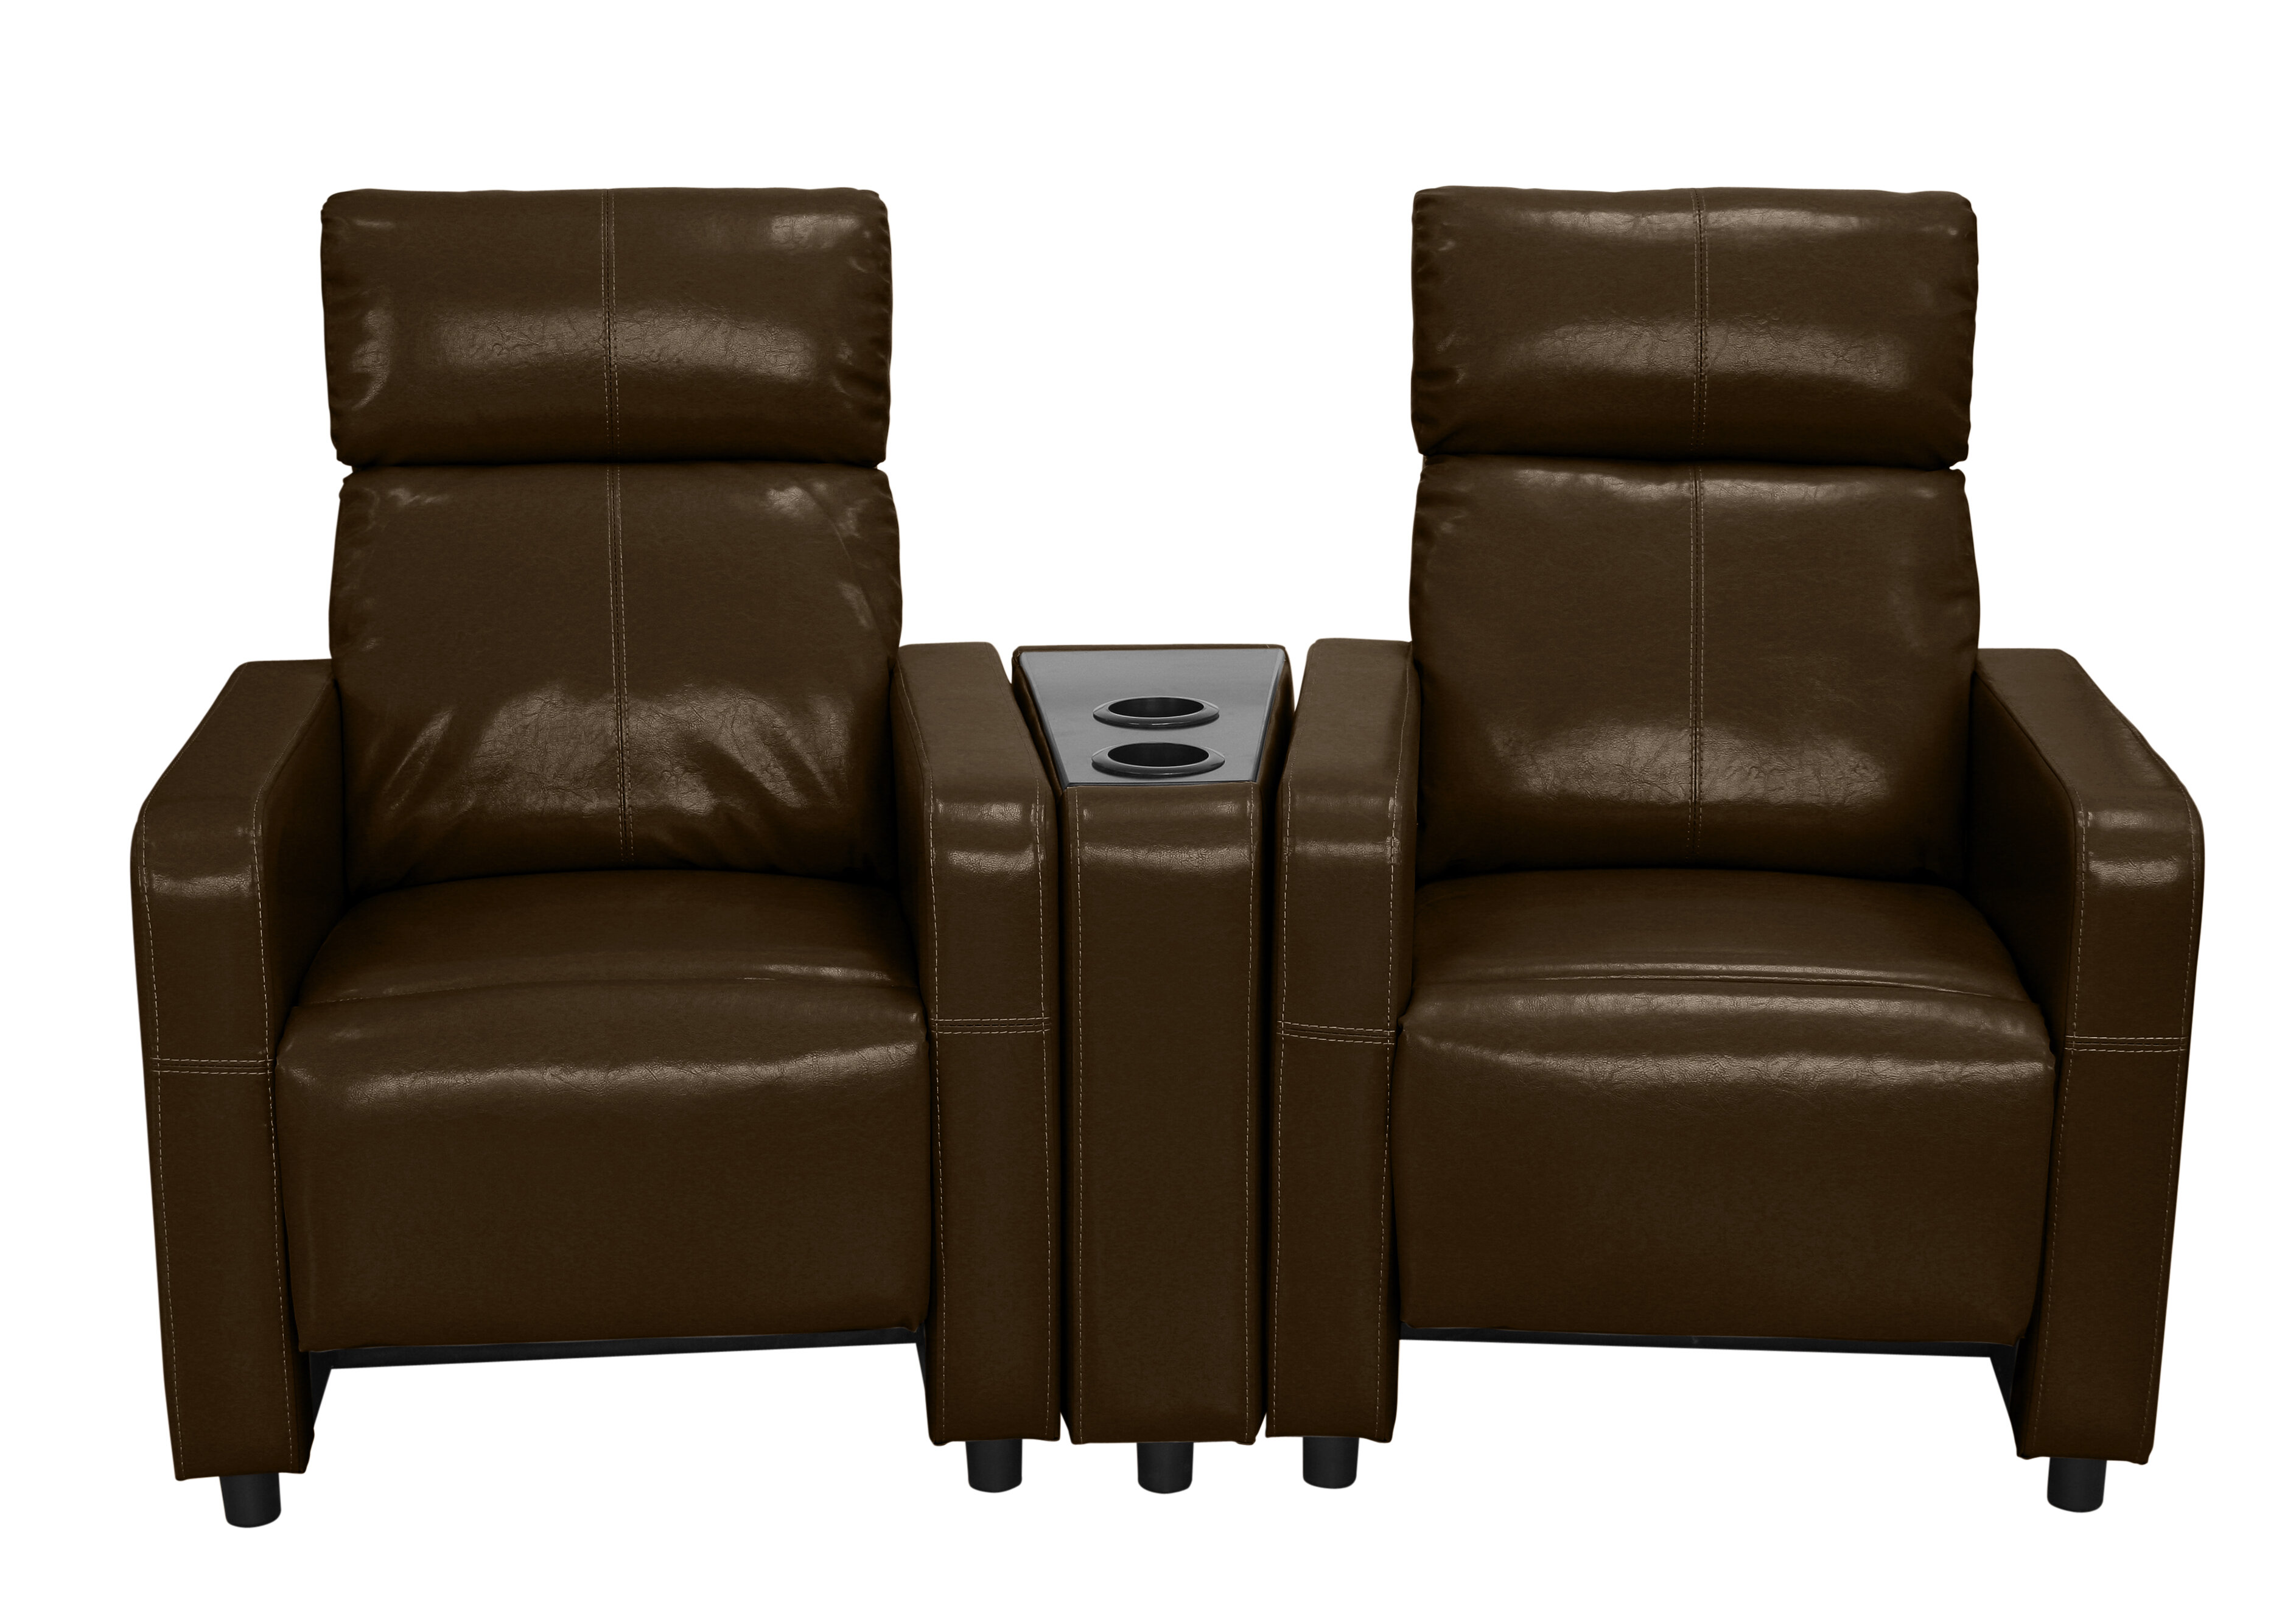 curved turbo recline black theater octane power loveseat home with seating middle premium pin